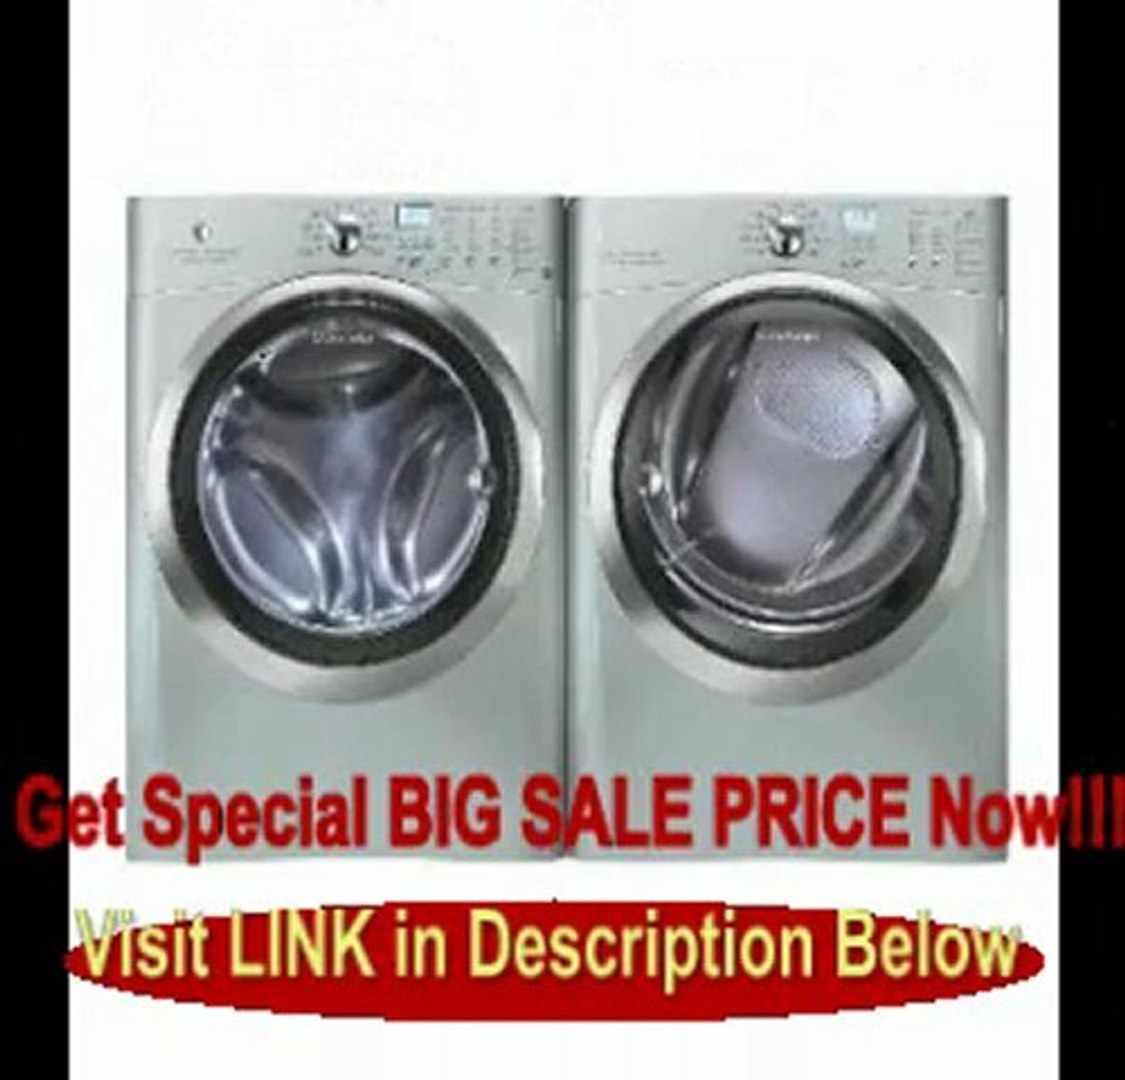 Elecs>Electrolux Silver IQ Touch Front Load Washer and Steam ELECTRIC Dryer Laundry Set EIFLS60LS